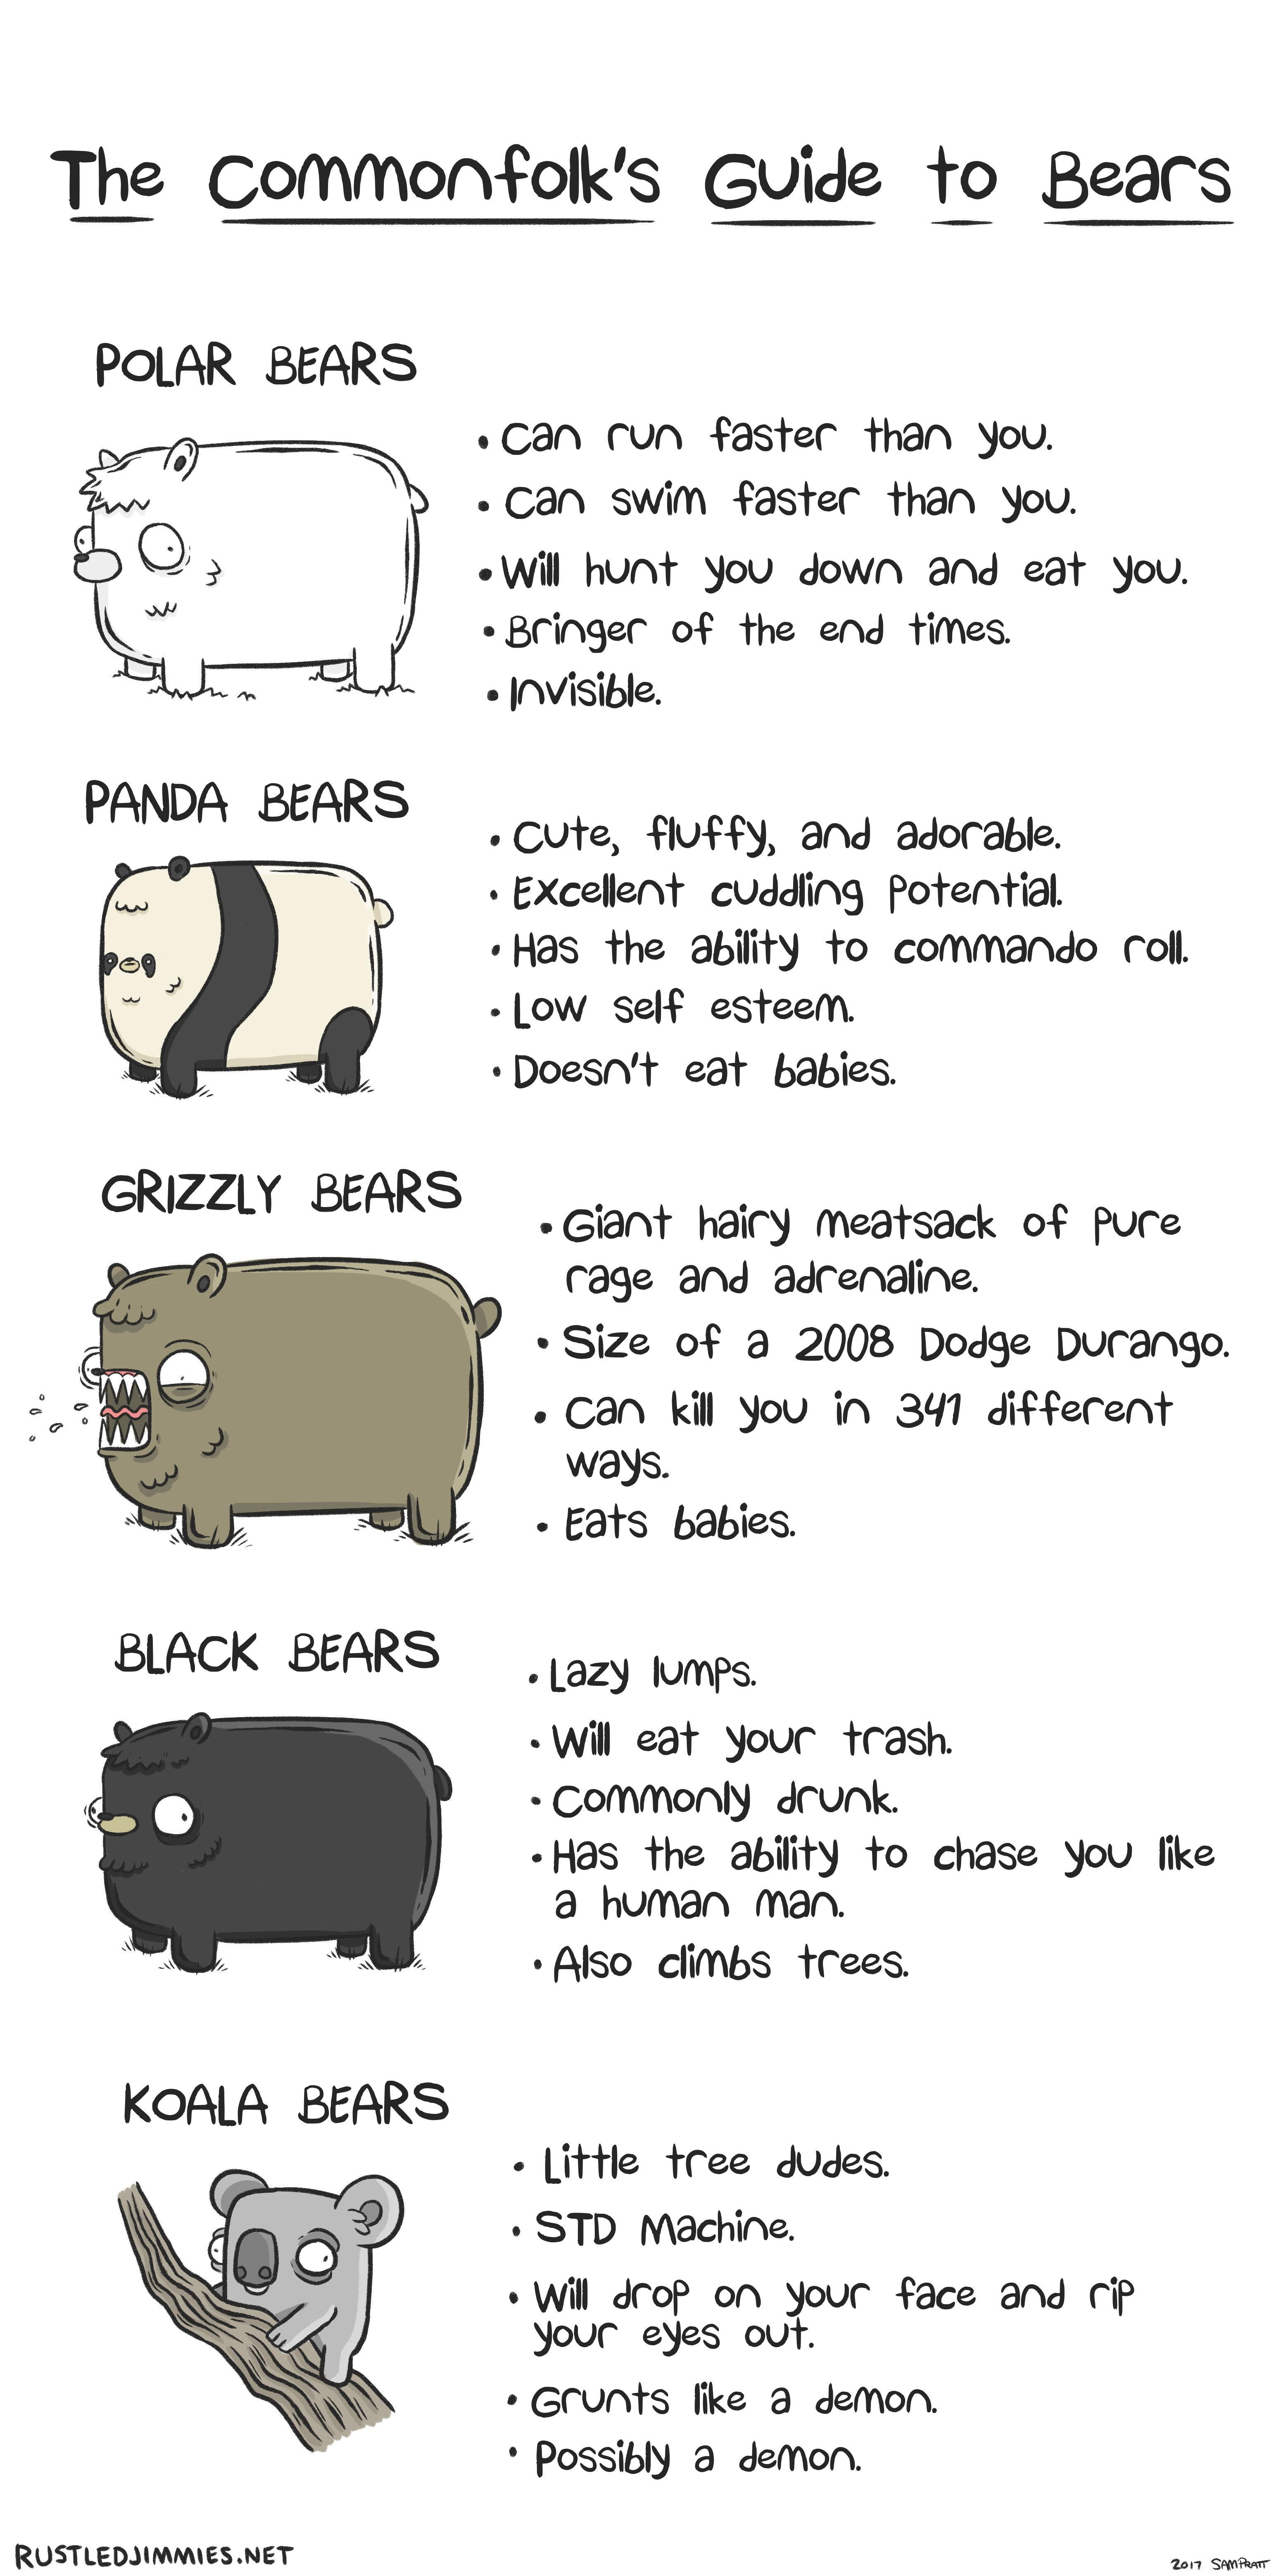 Commonfolks Guide To Bears